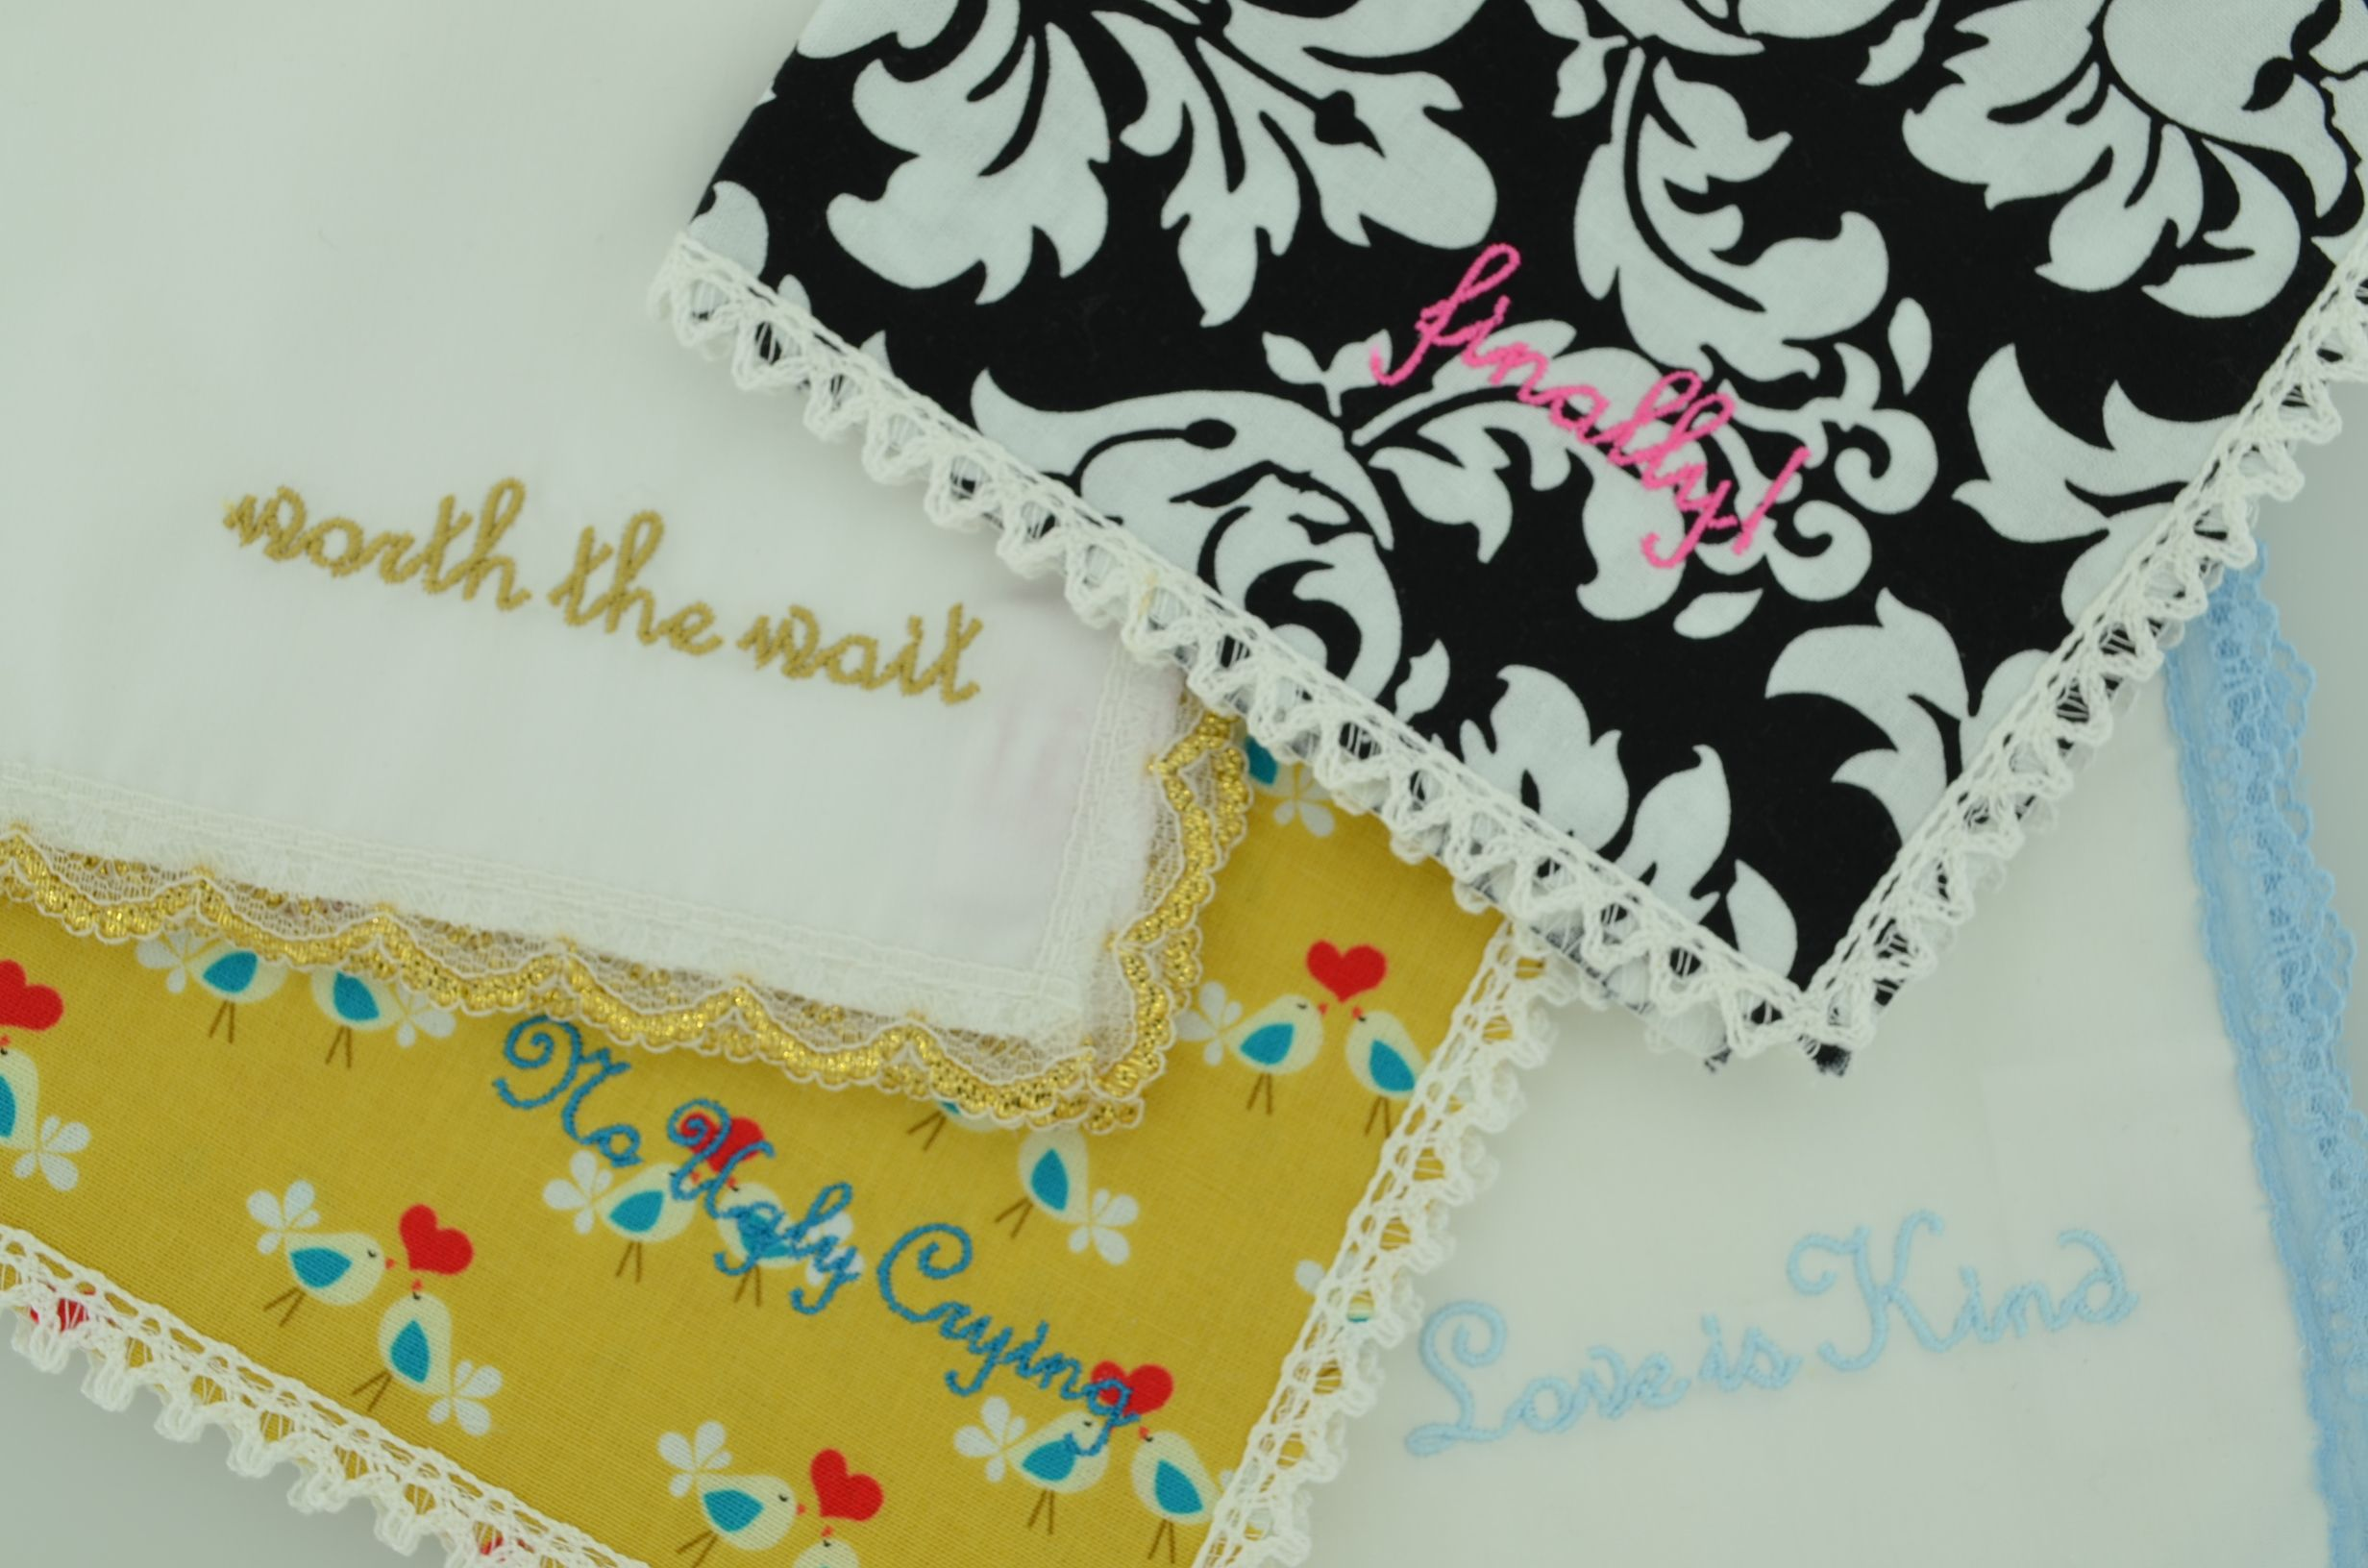 Personalized Embroidered Wedding Handkerchiefs by Happy Hanky. $12.50 + custom  embroidery www.thehandkerchiefshop.